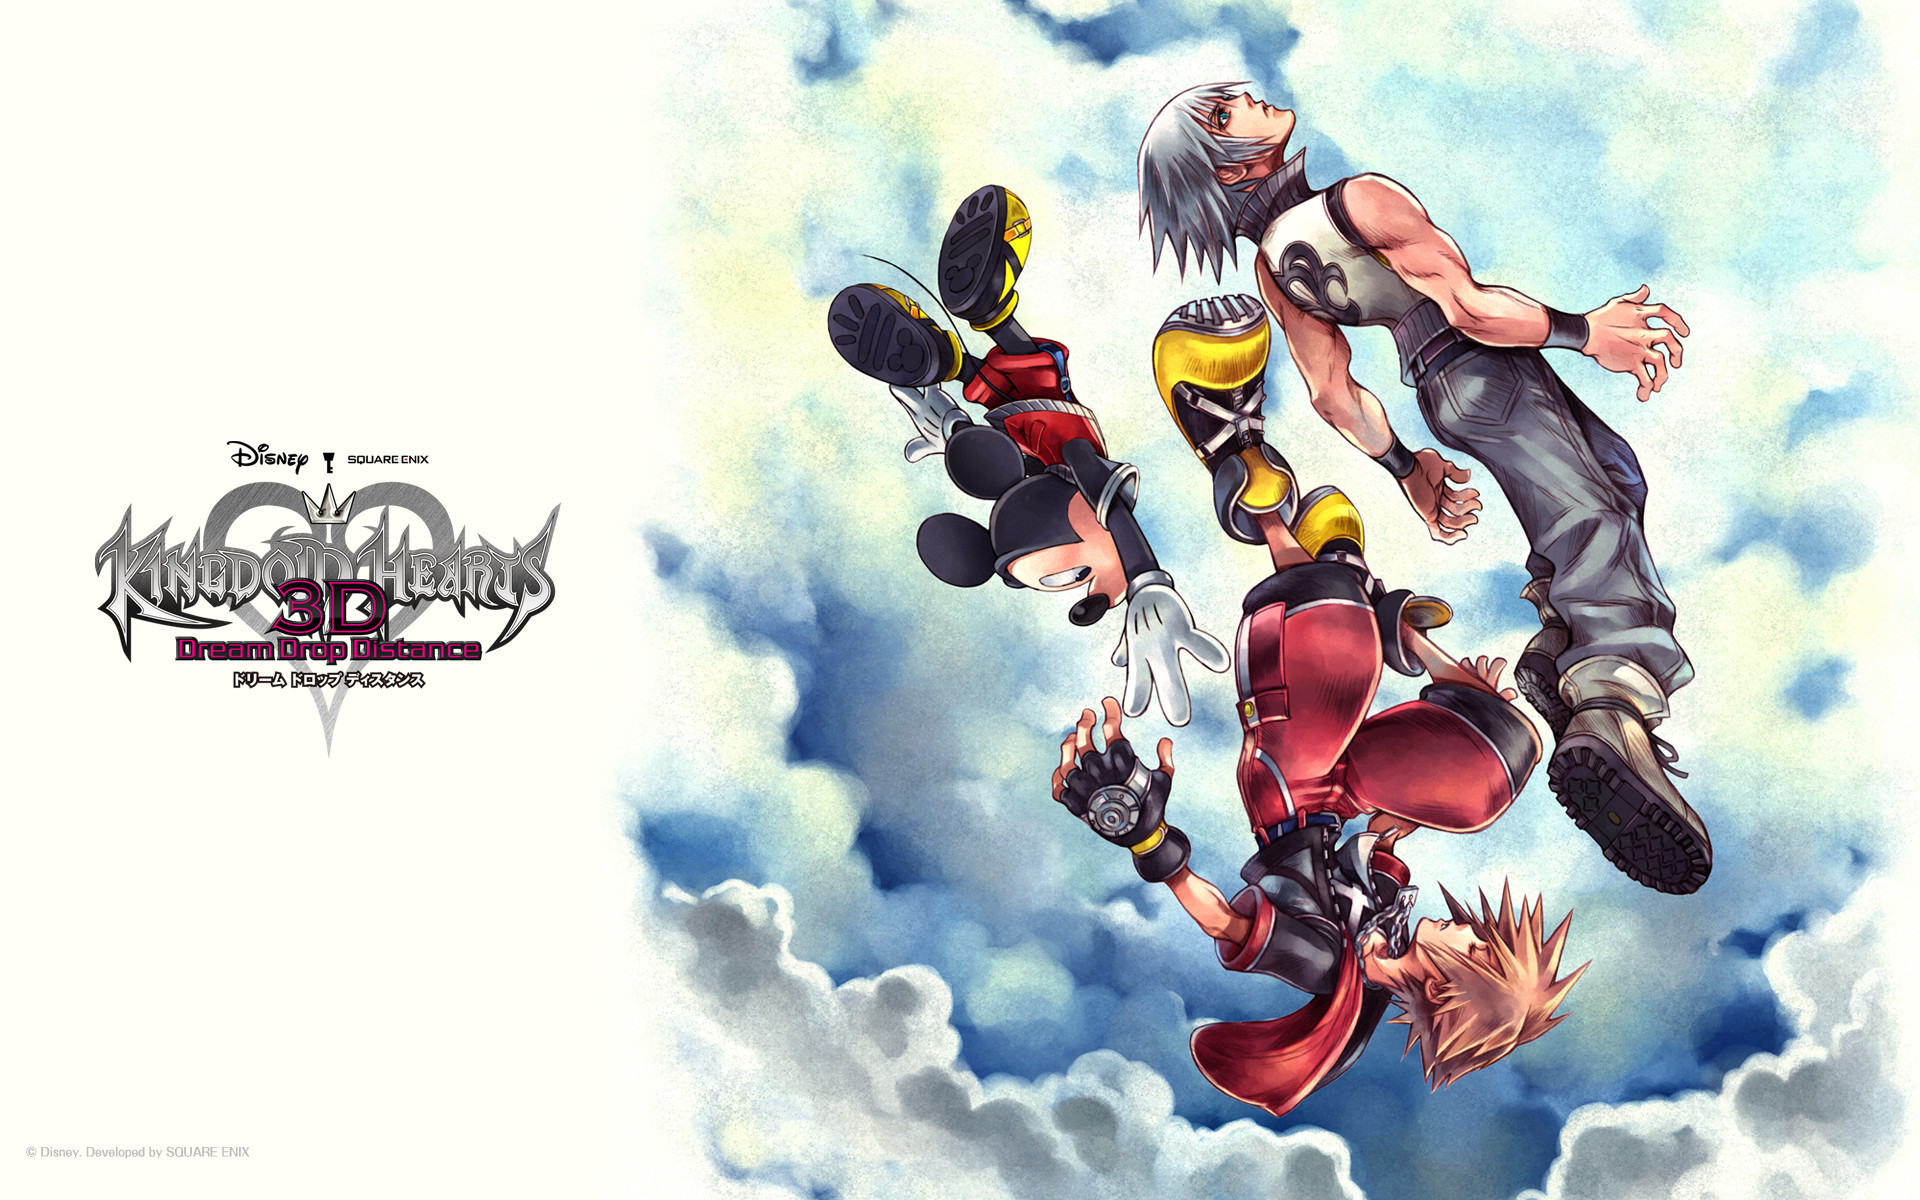 1920x1200 ... download Kingdom Hearts 3D: Dream Drop Distance image